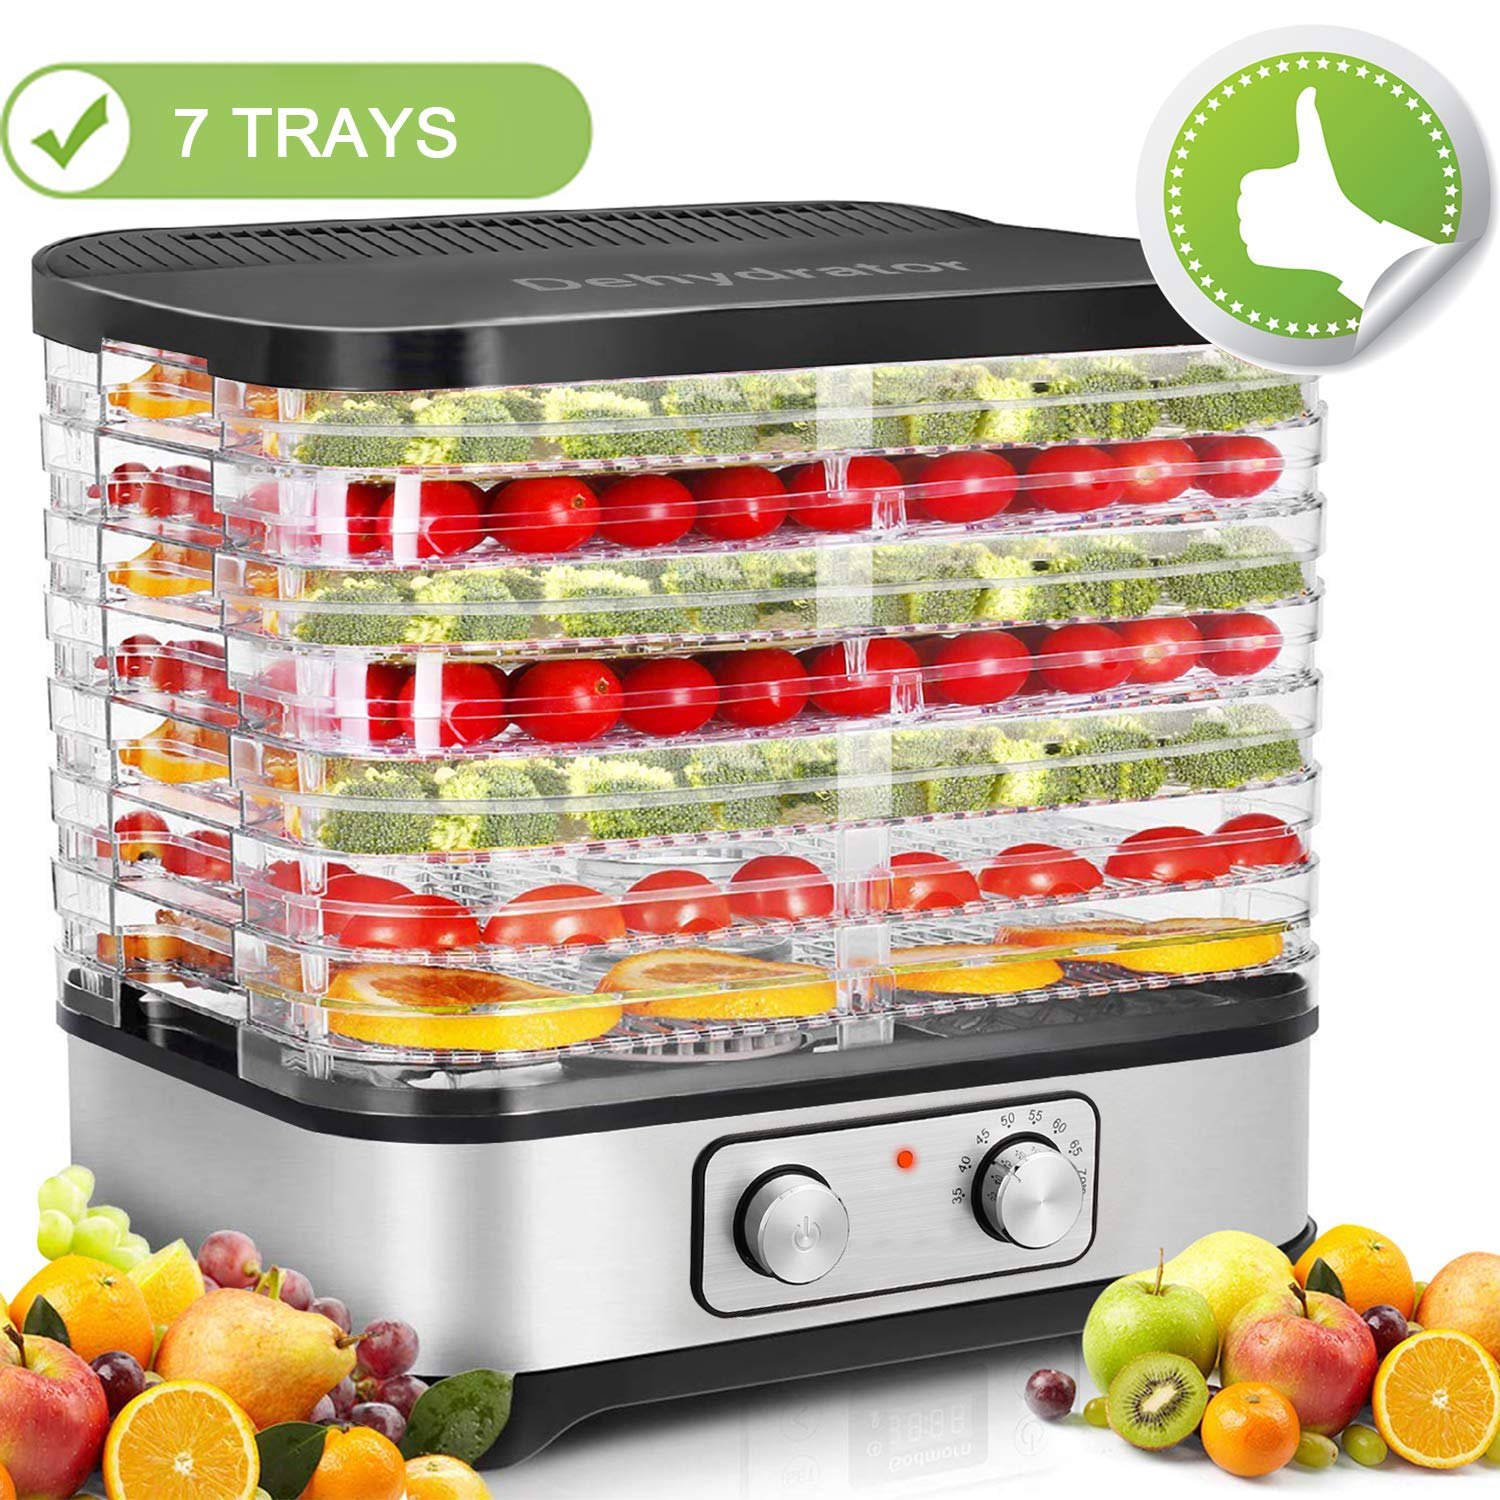 Homdox Food Dehydrator Machine, Food Dryer for Jerky/Meat/Beef/Fruit/Vegetable, Temperature Control, 5 Trays (7 trays) by Homdox